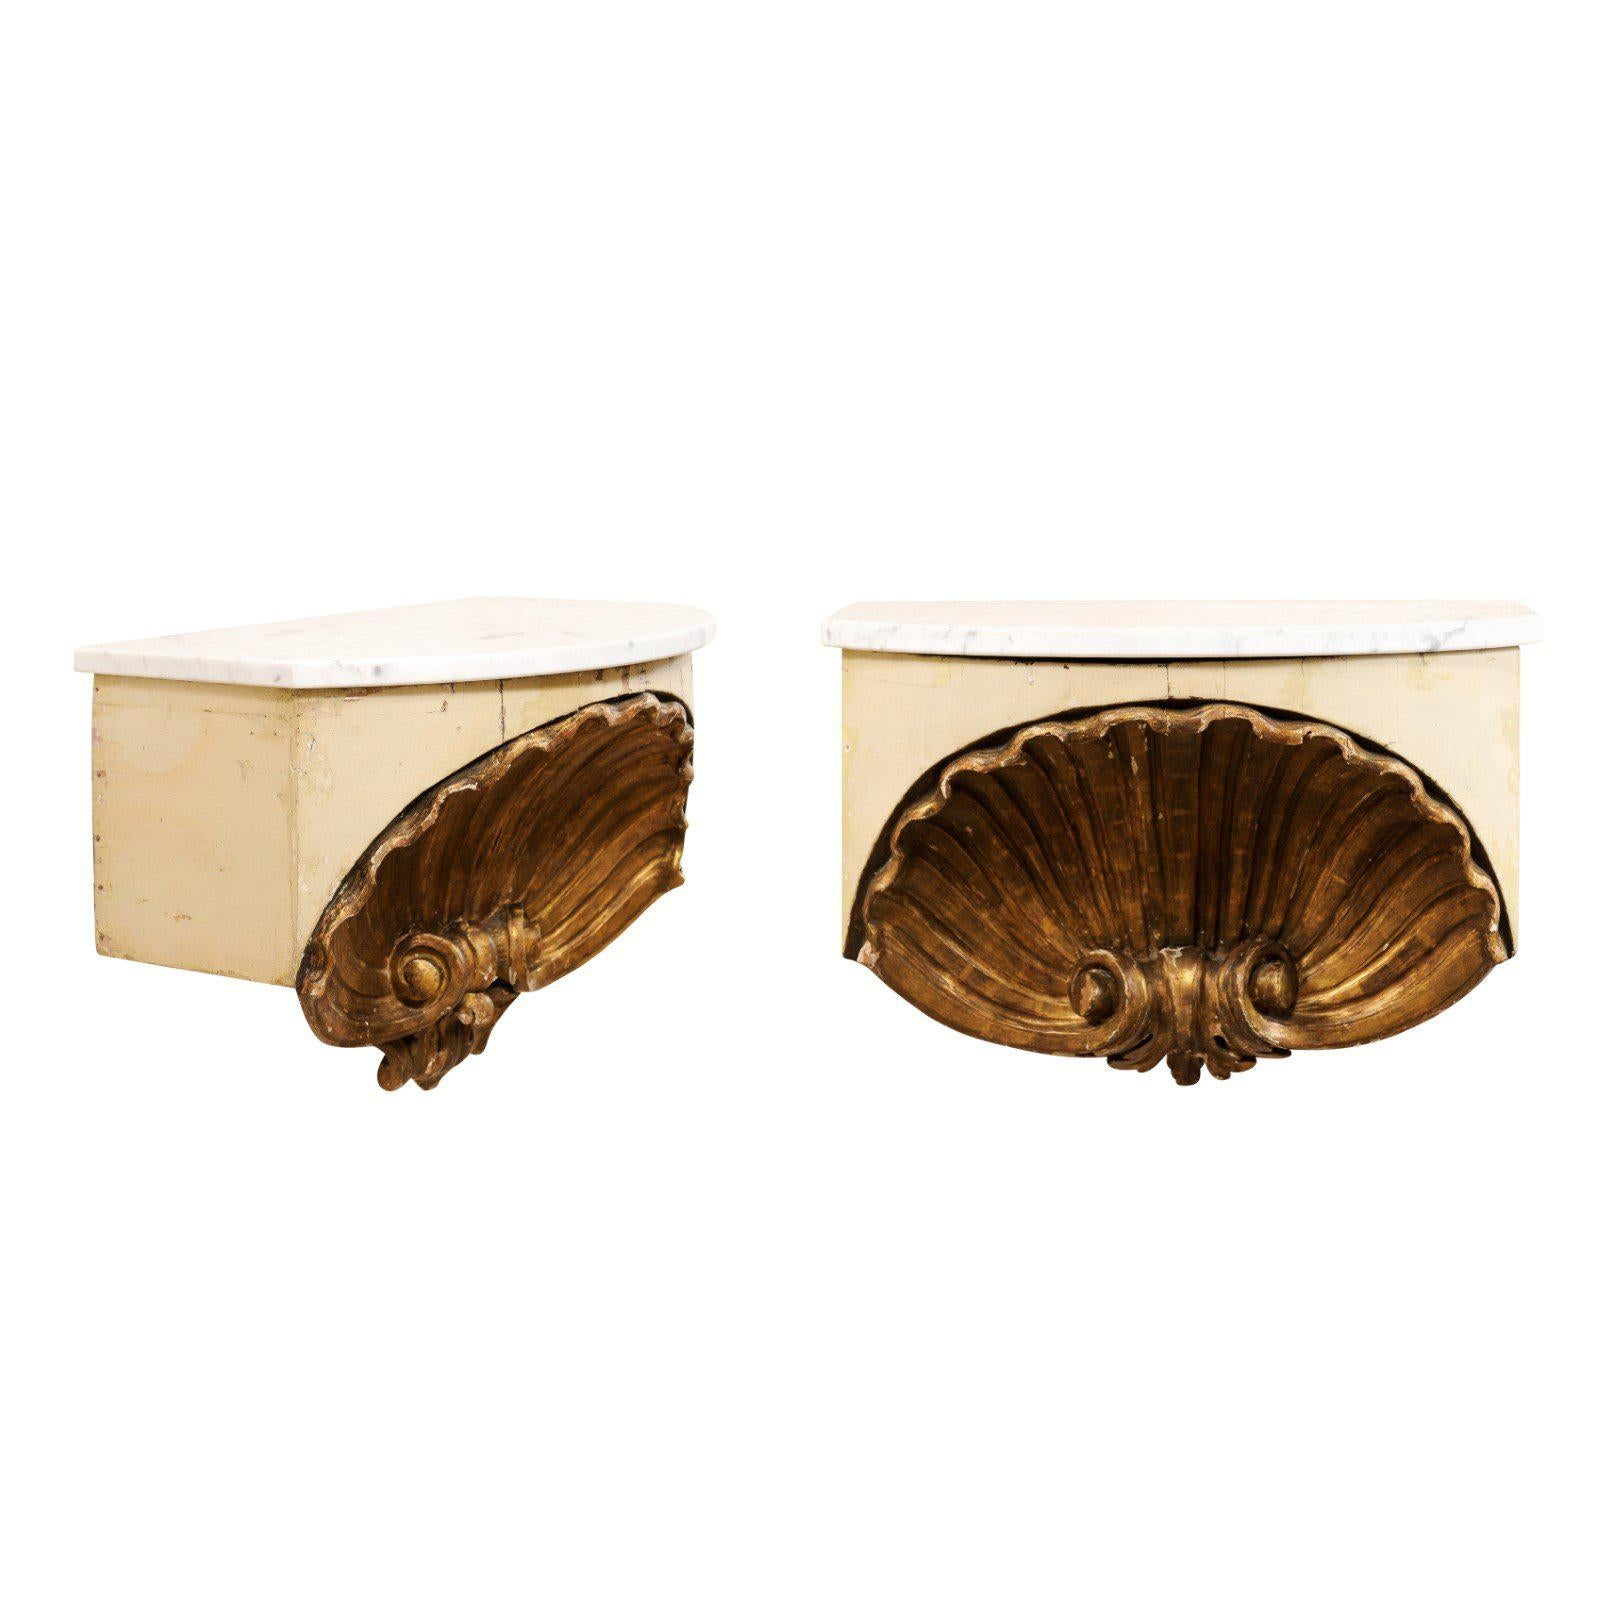 Pair of Early 19th Century Italian Shell Wall-Shelves with Marble Tops